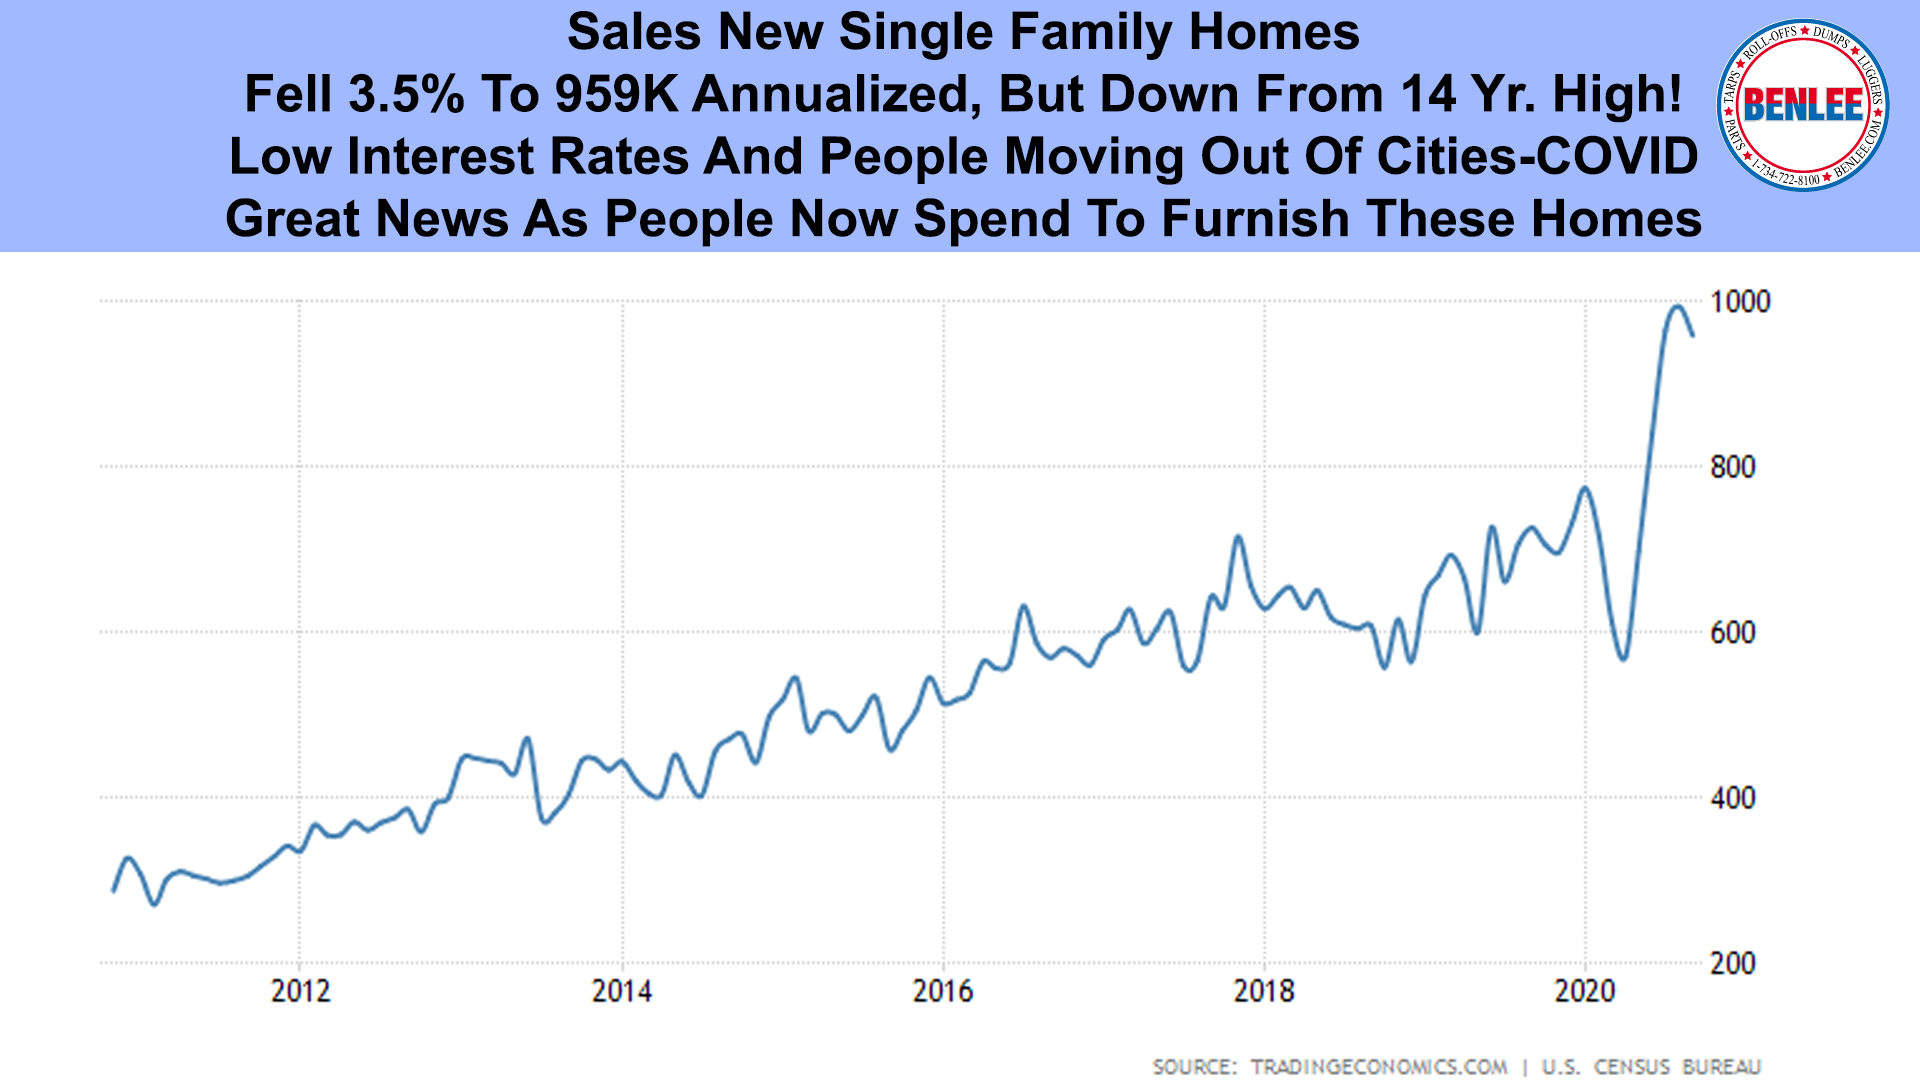 Sales New Single Family Homes